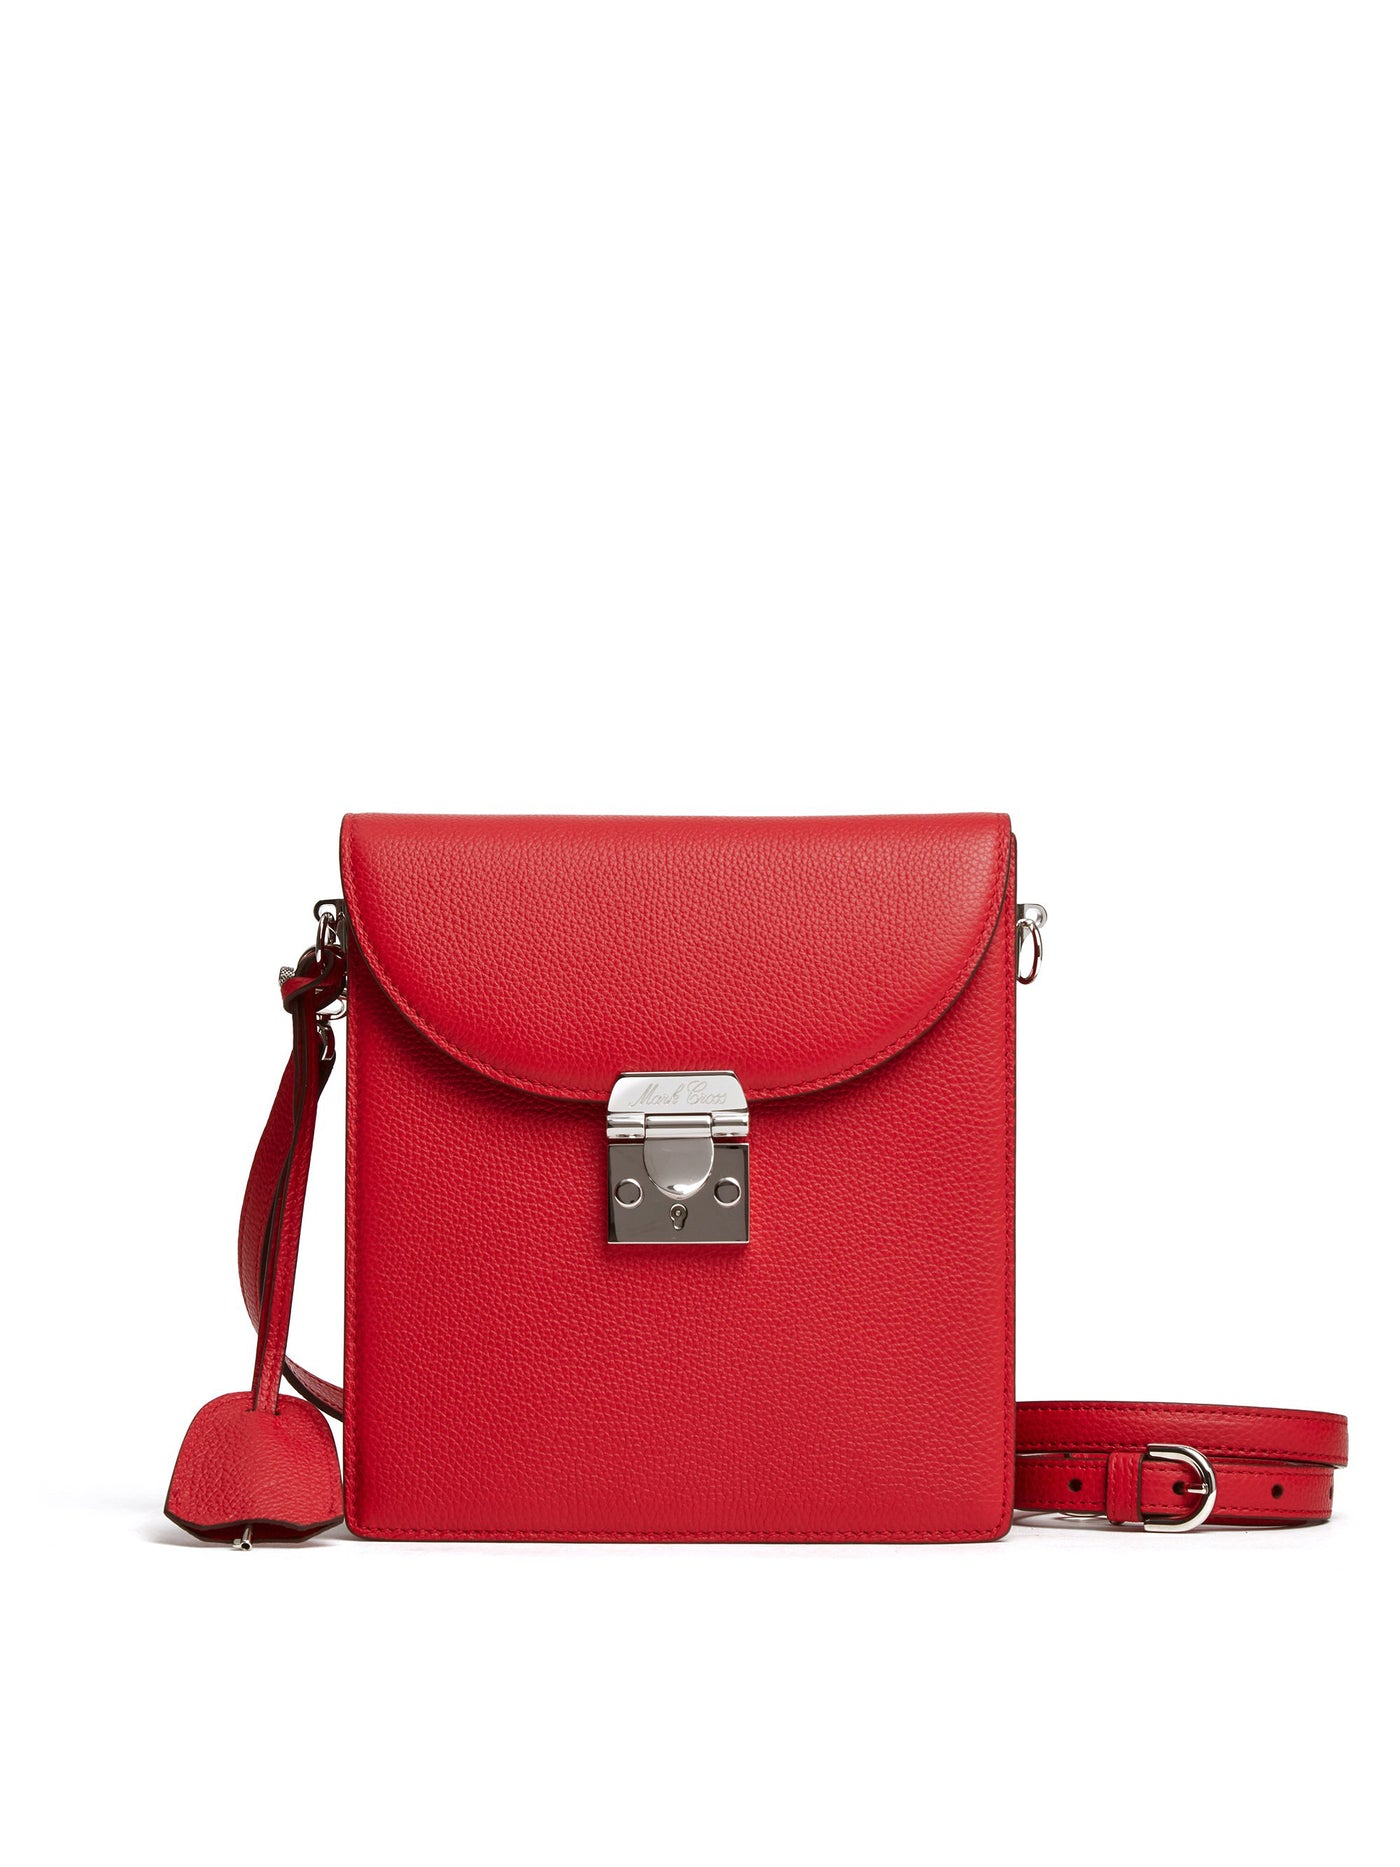 Mark Cross Patrick Leather Crossbody Bag Tumbled Grain MC Red Front